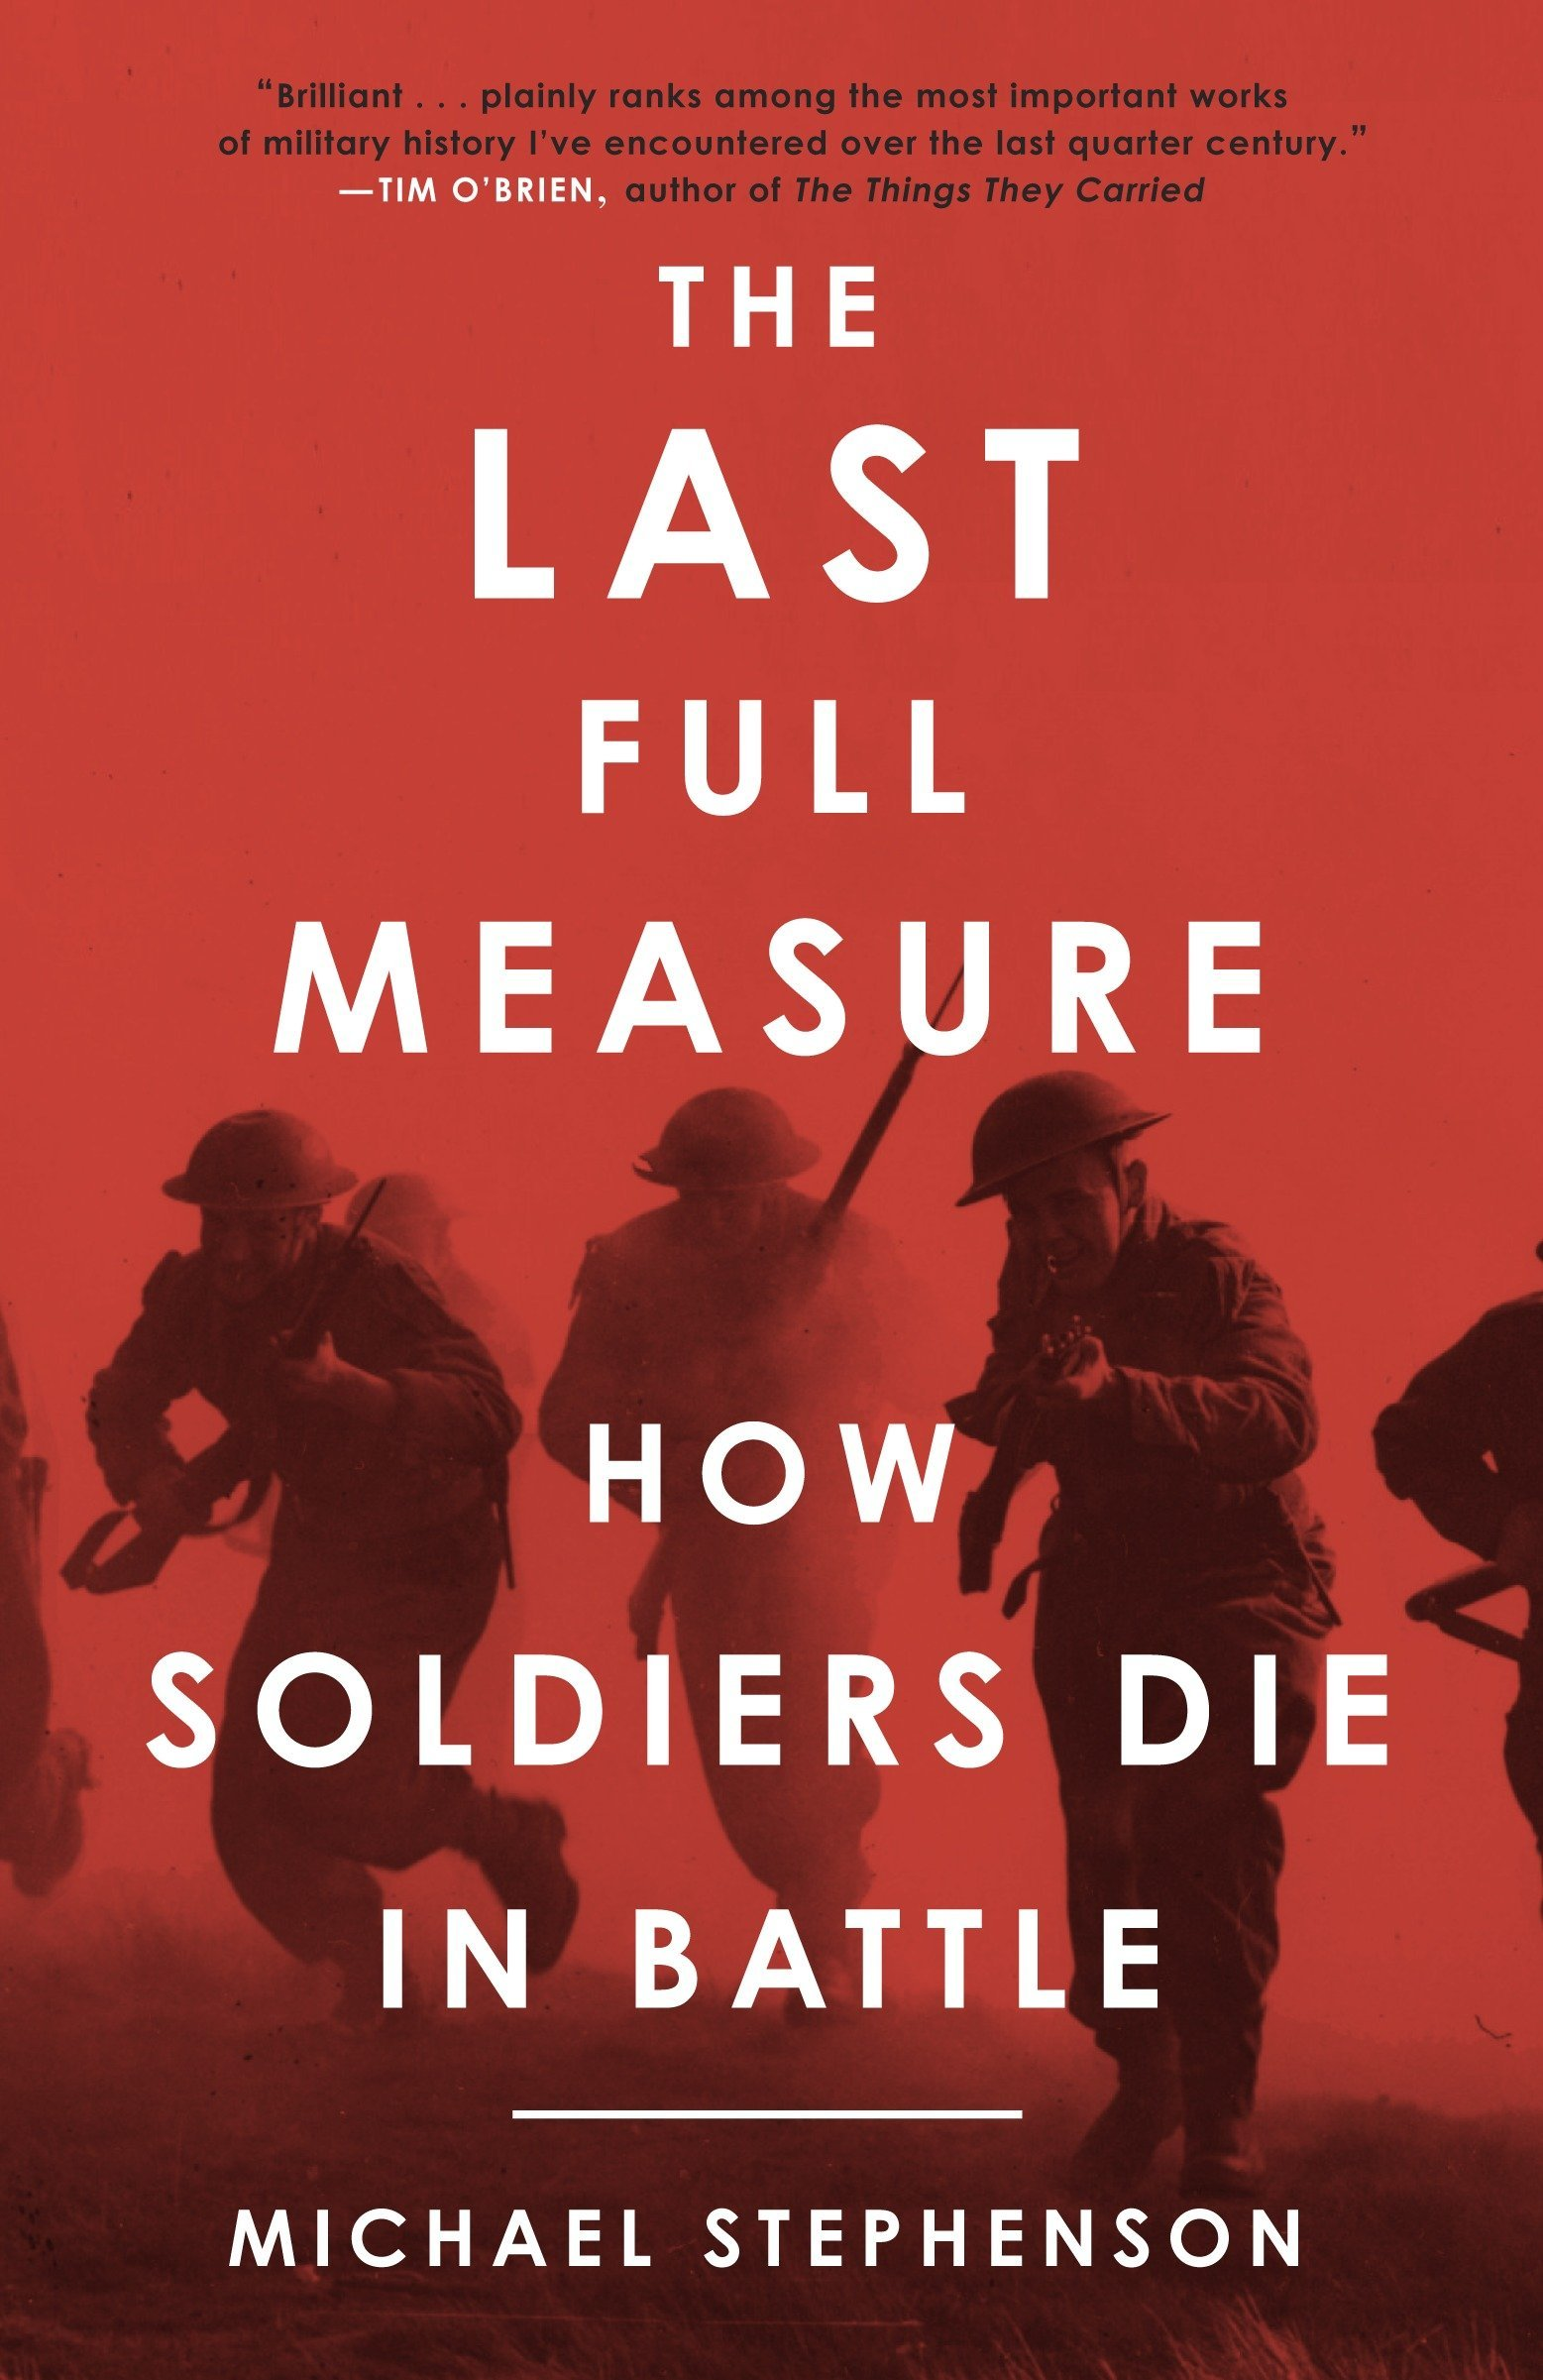 Book cover of The Last Full Measure by Michael Stephenson.